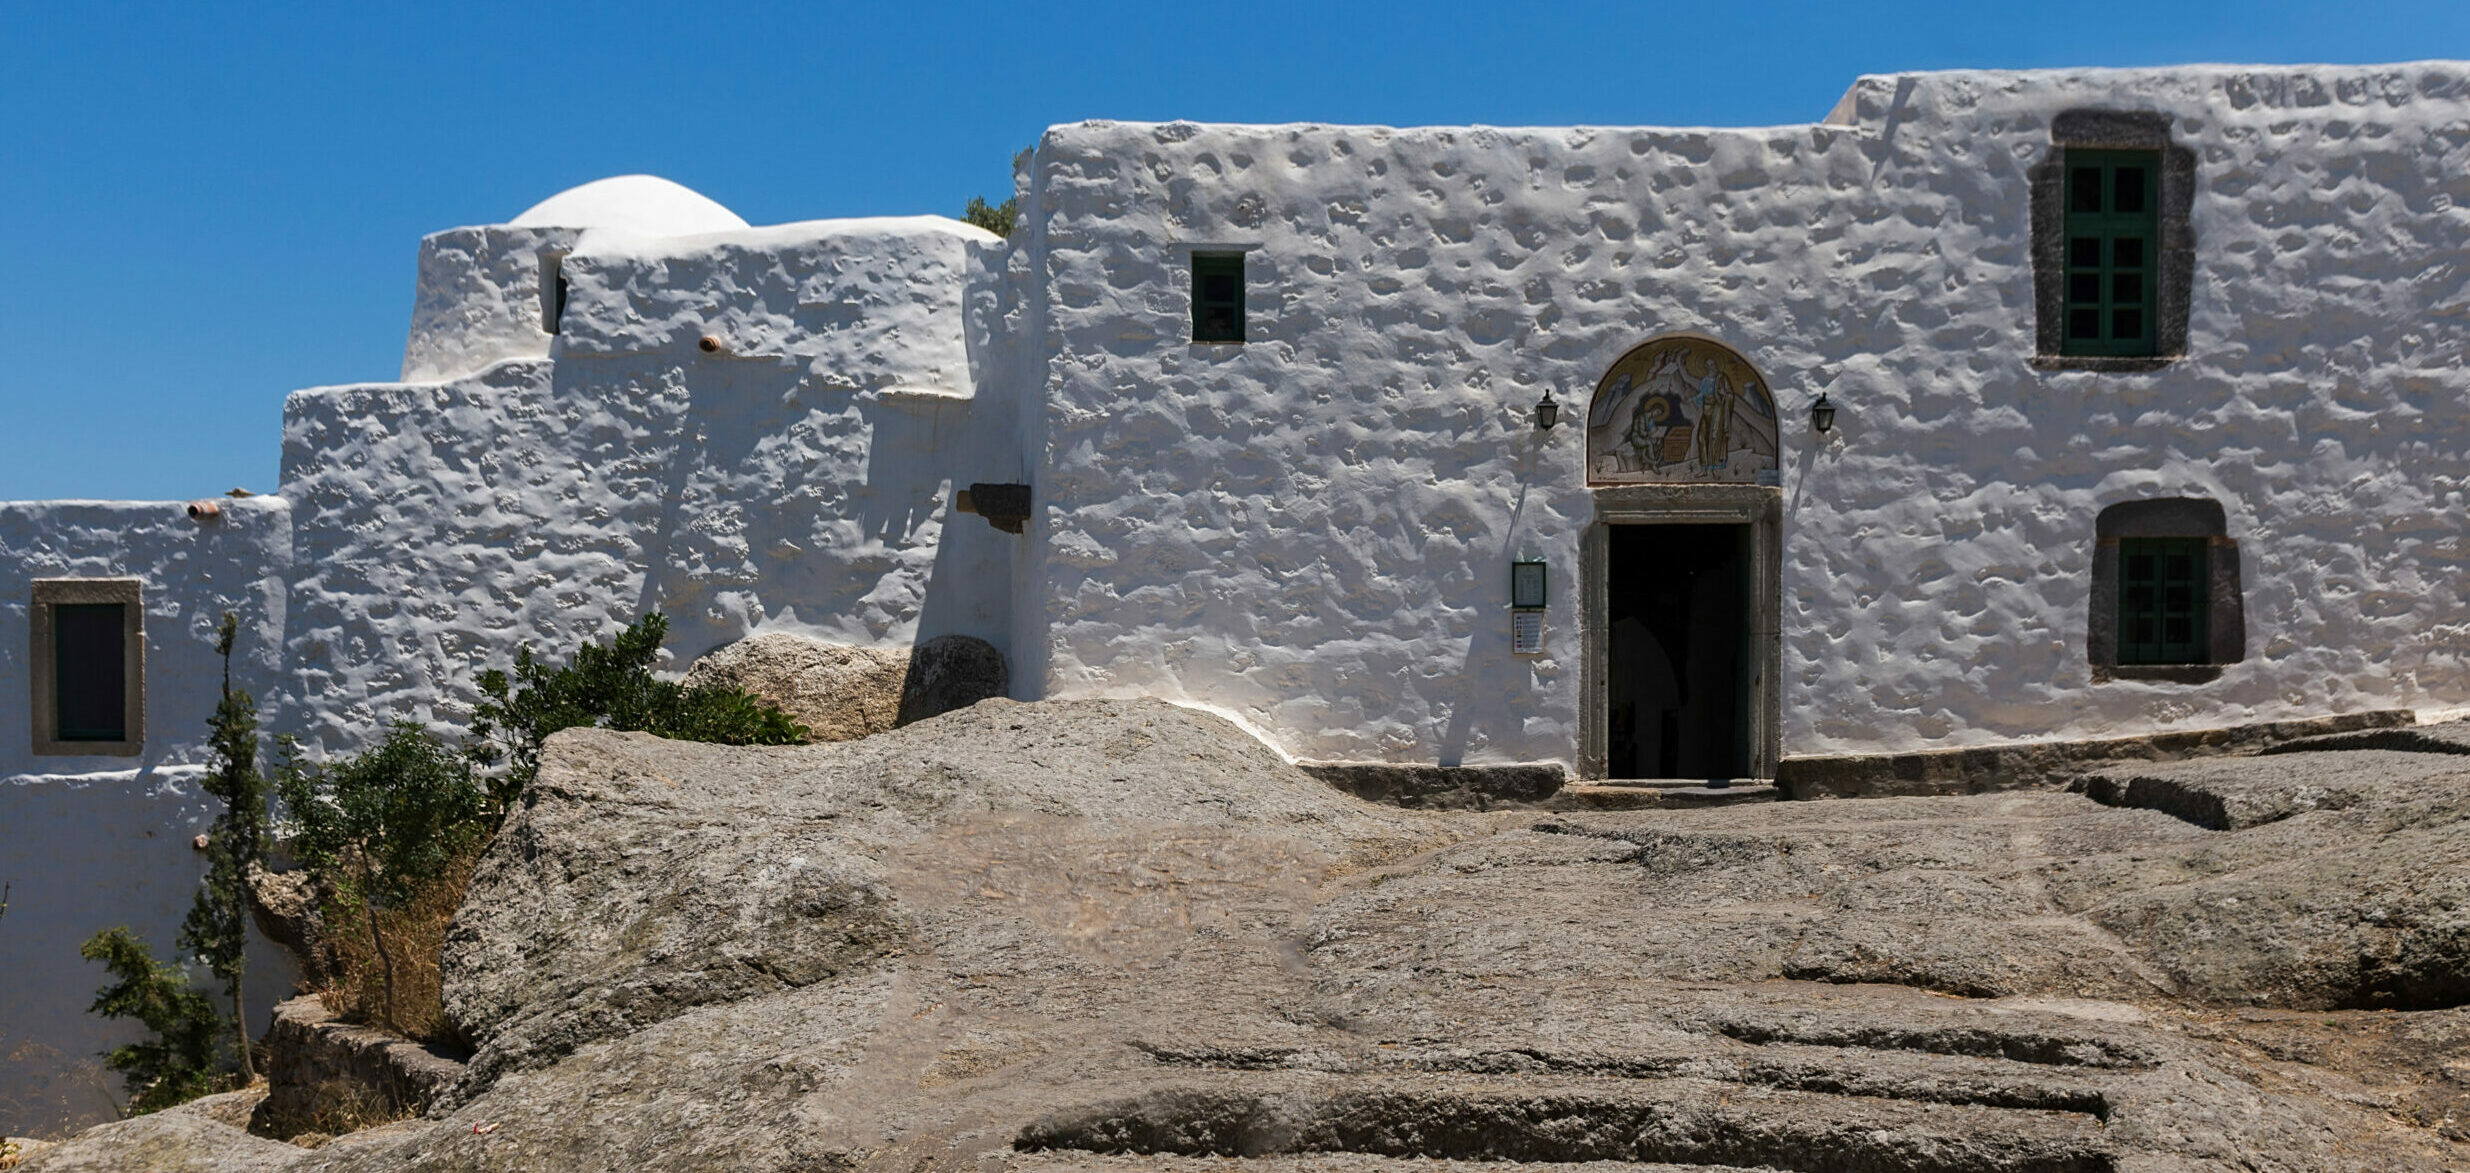 The Holy Cave that played a big role in the spread of Christianity